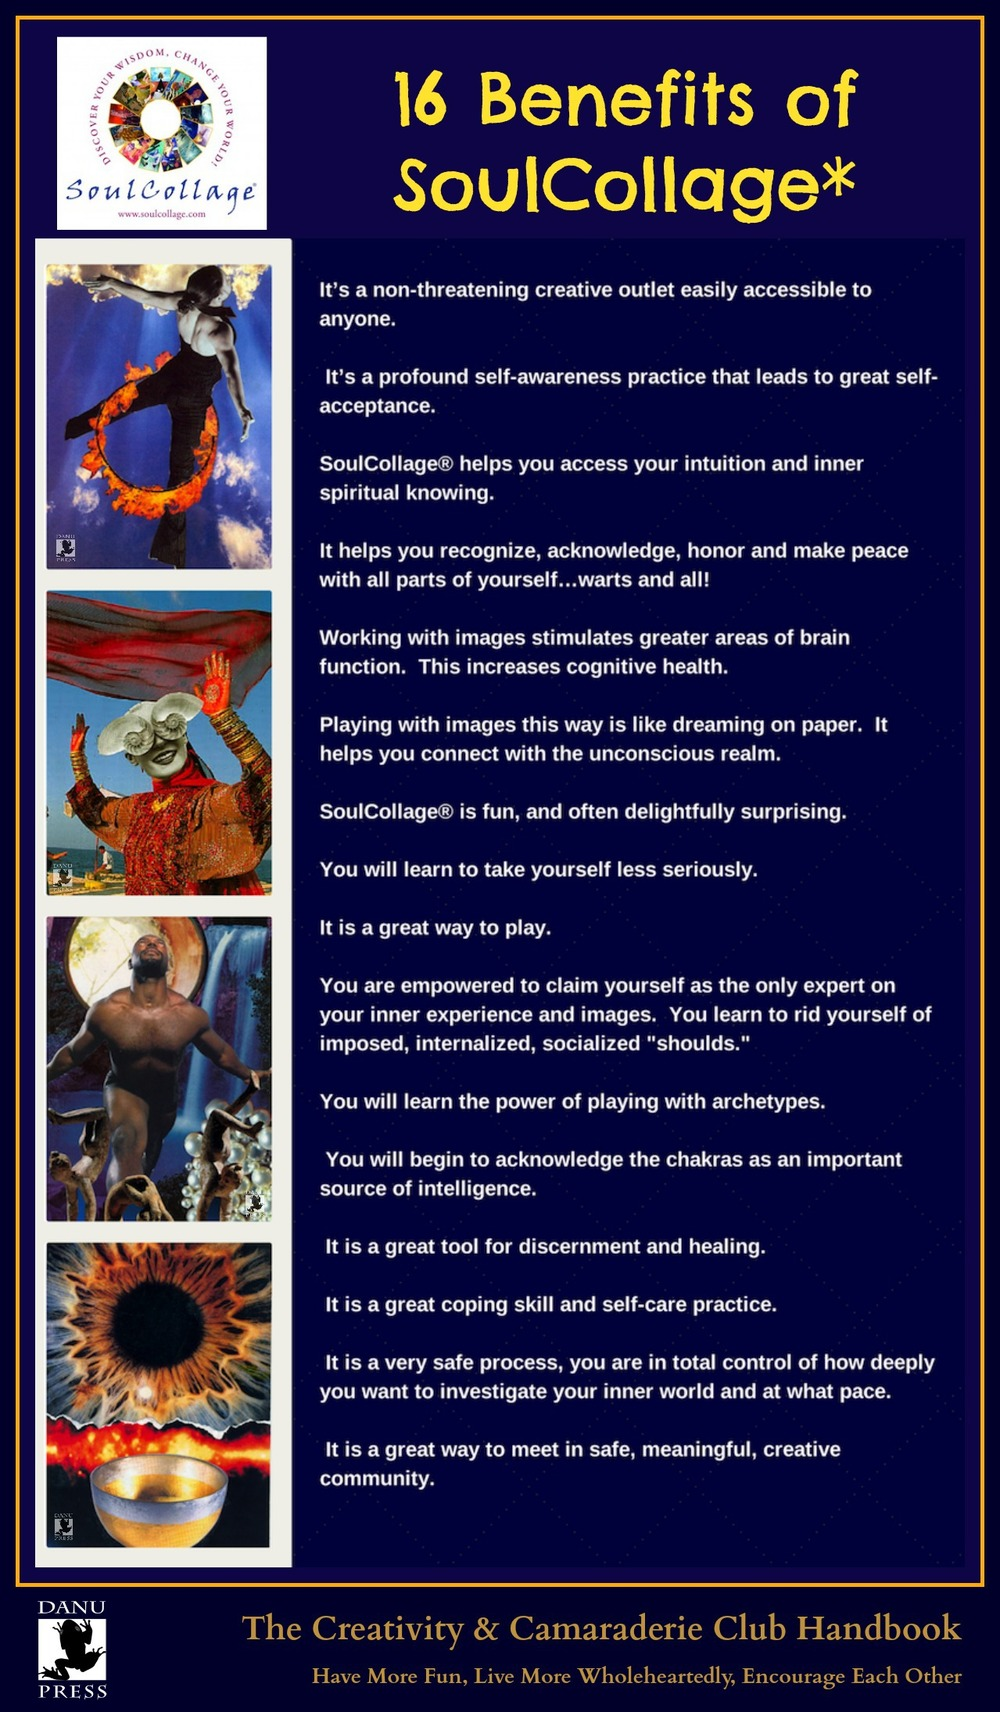 SoulCollage, Benefits of SoulCollage, SoulCollage infographic, SoulCollage cards, strategy of the spirit, strategies of the spirit